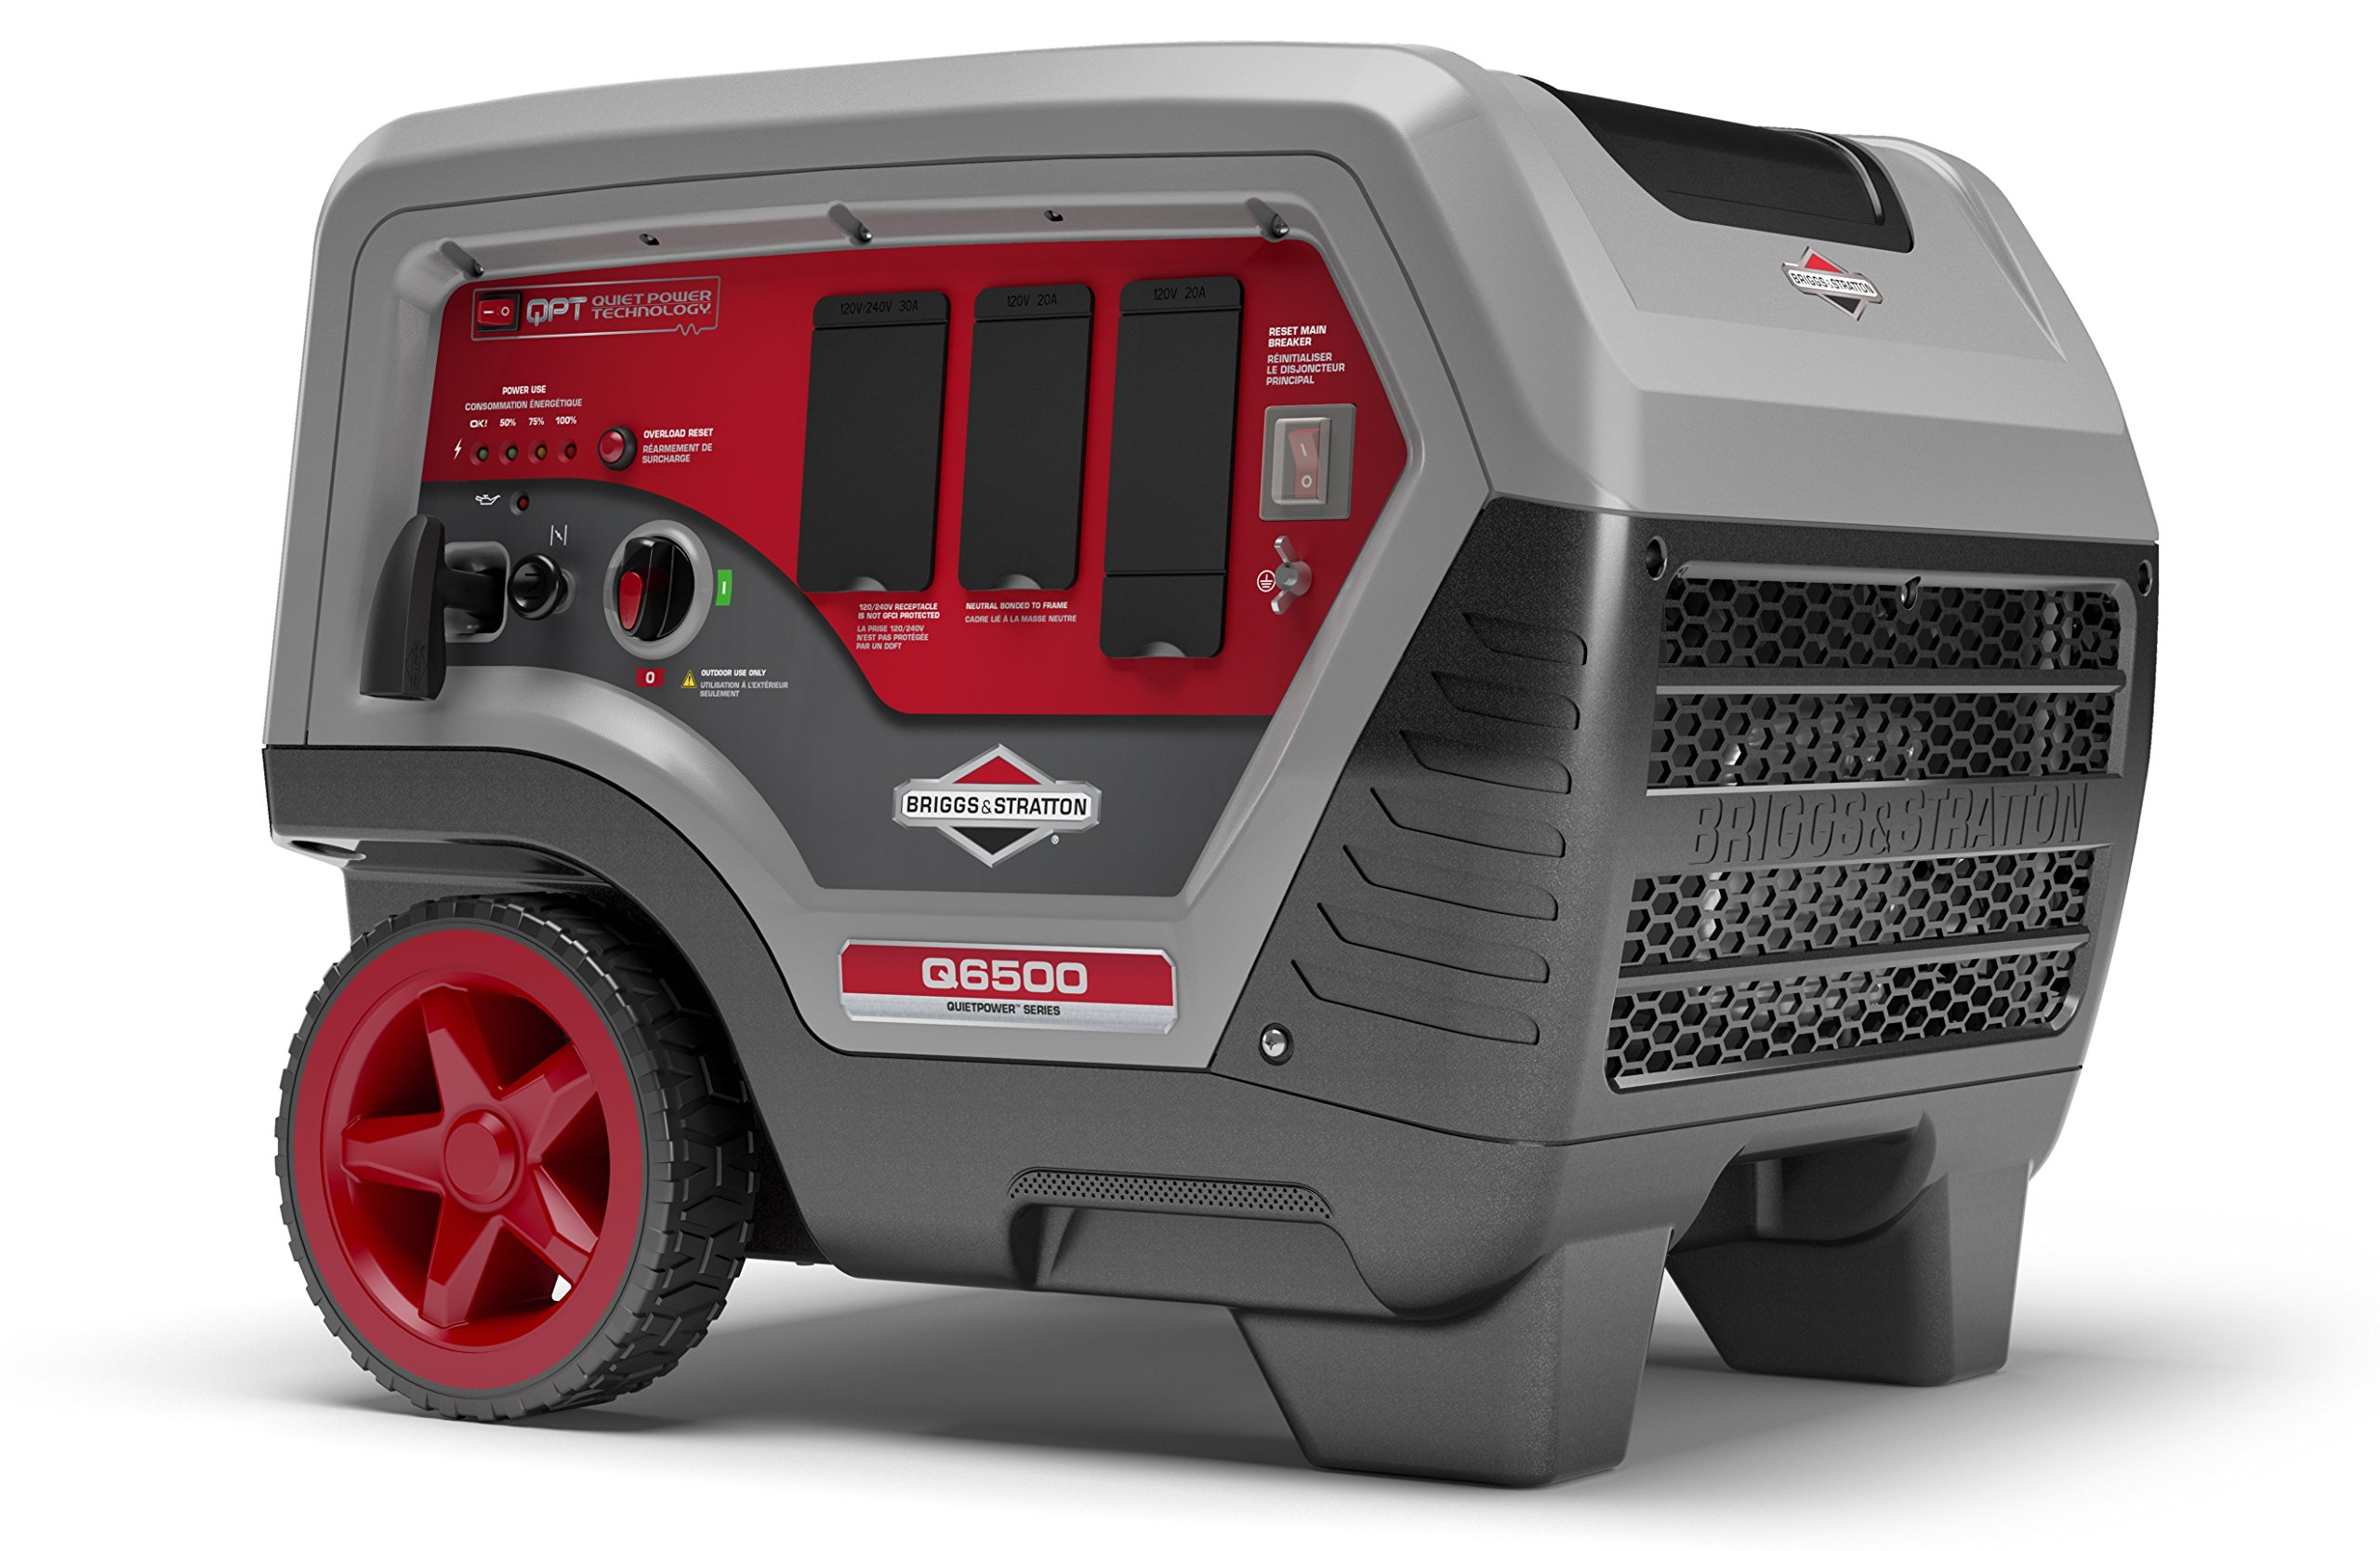 Briggs & Stratton Q6500 Inverter Generator - 6500 Starting Watts QuietPower Series Portable Generator for Home Backup